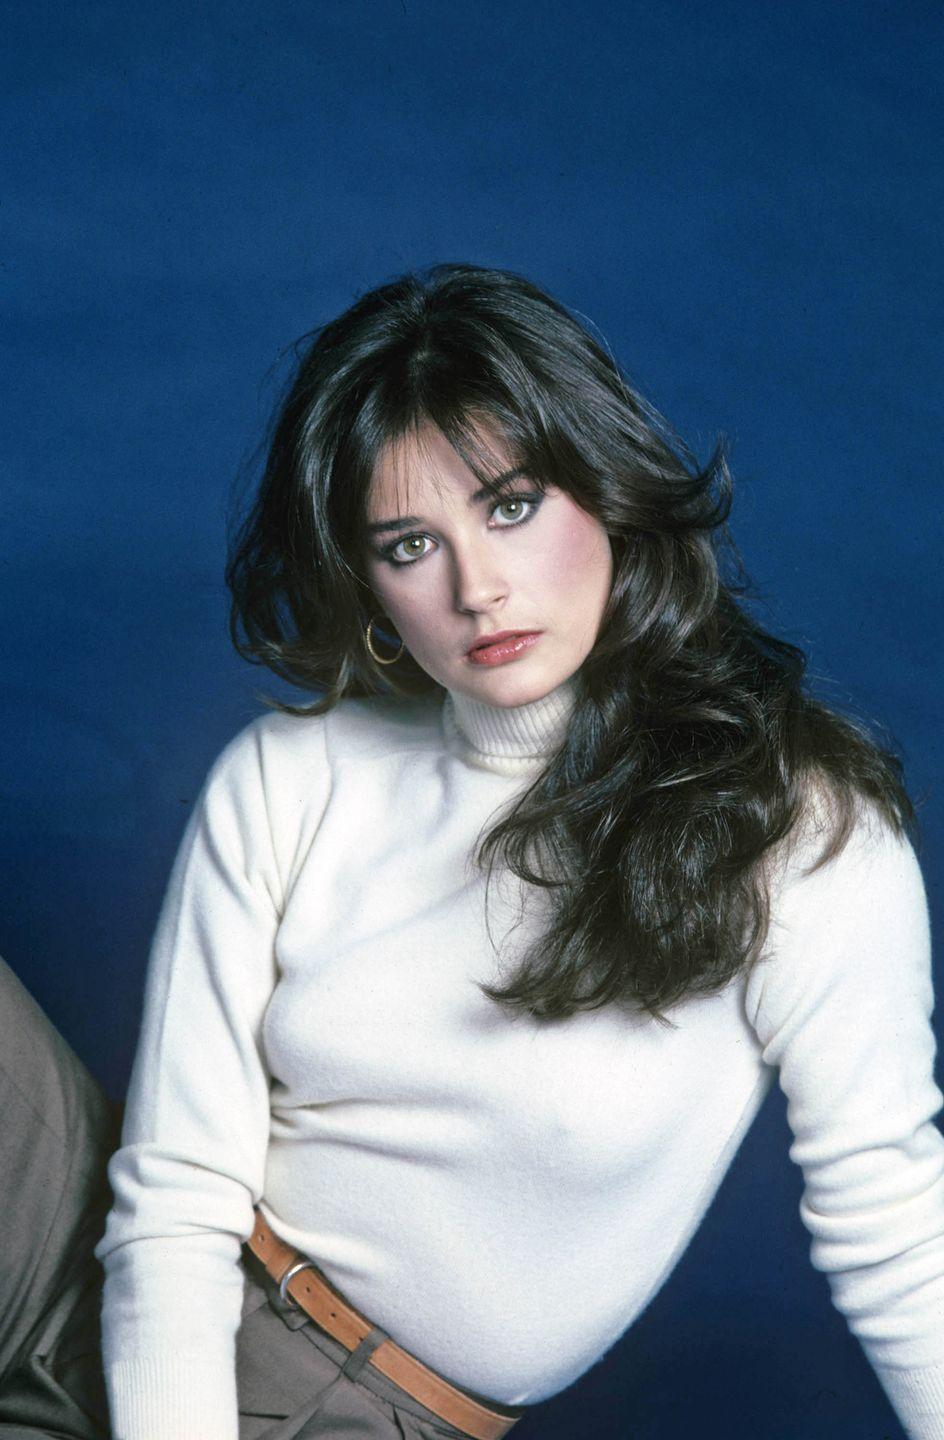 <p>After gaining some Hollywood buzz acting on the soap opera <em>General Hospital </em>in 1981, Moore joined the Brat Pack and transitioned on to the big screen in <em>Blame it on Rio,</em> <em>St Elmo's Fire, </em>and <em>About Last Night. </em></p>